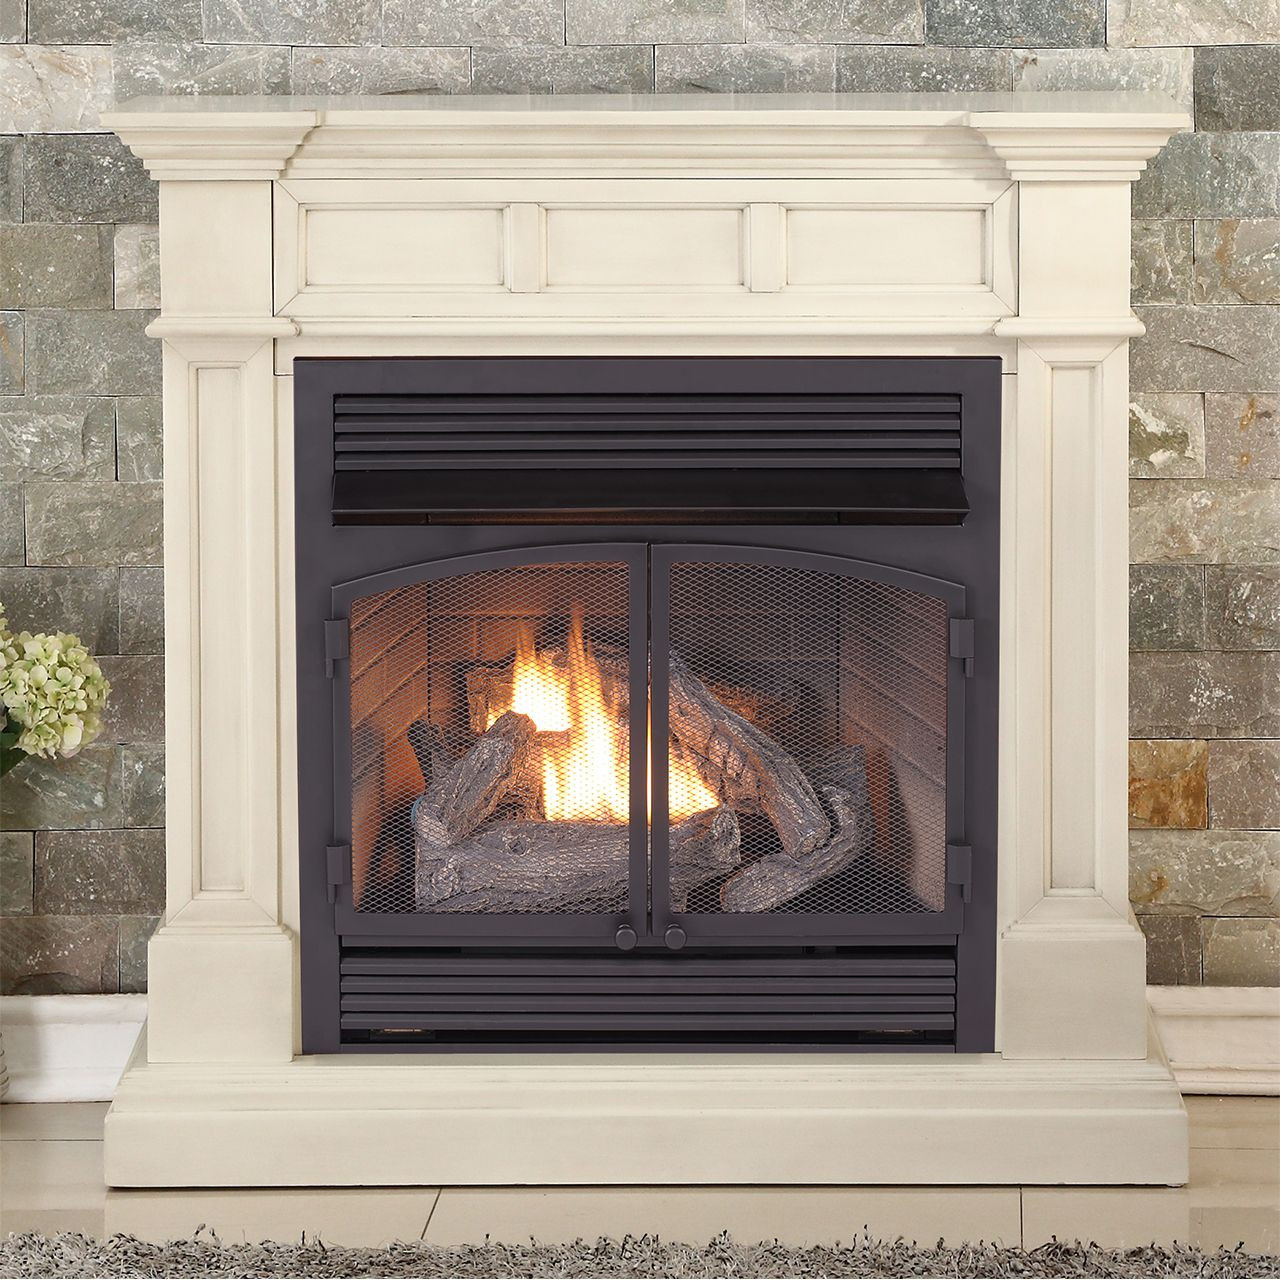 Duluth Forge Dual Fuel Ventless Gas Fireplace - 26,000 BTU, Remote ...